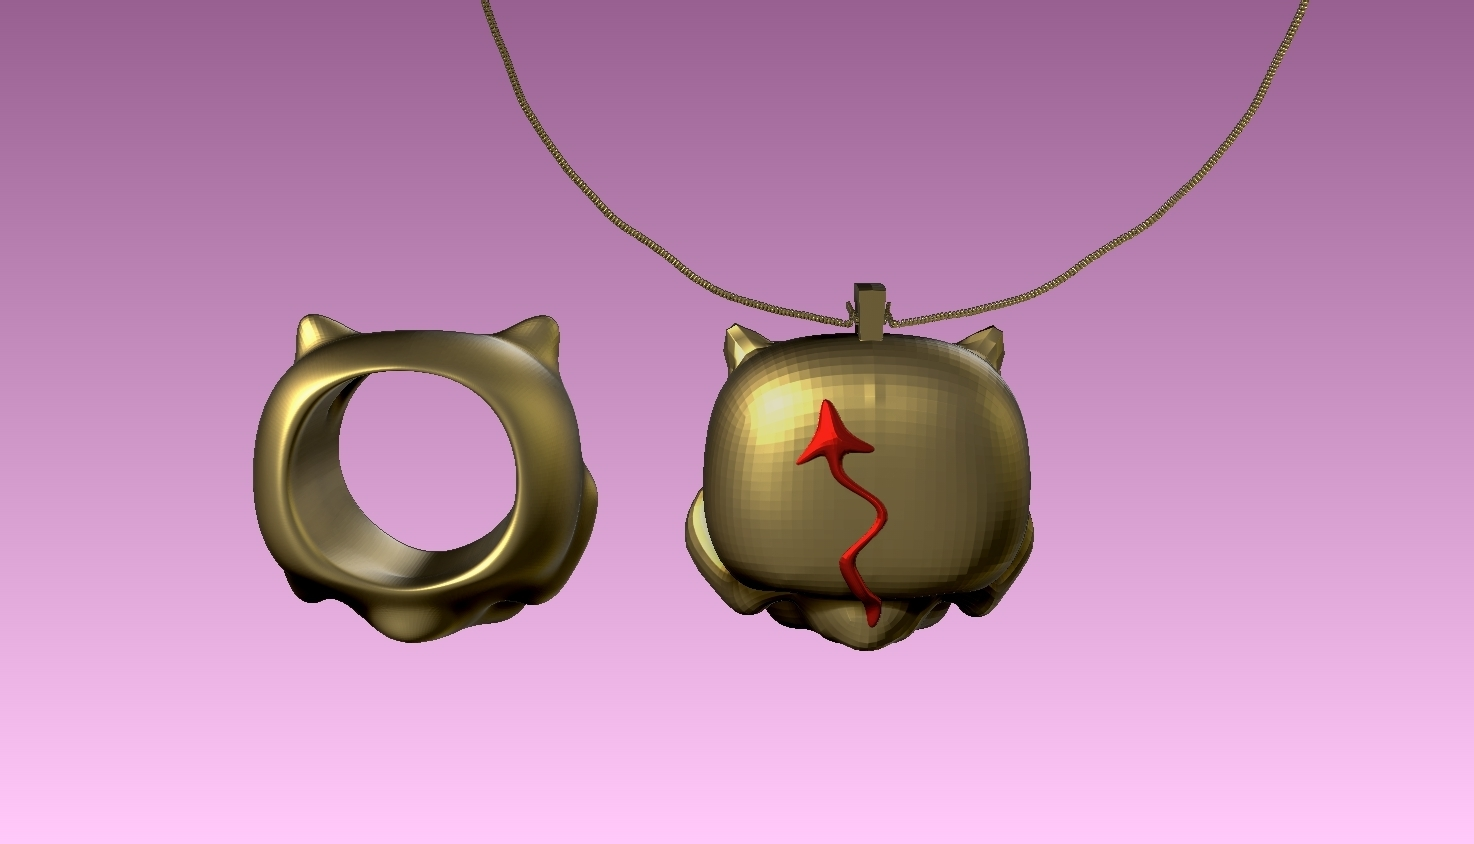 3.jpg Download free STL file devil baby FUNKO necklace and ring . funkos colgante bebe demonio y anillo a juego. #ANYCUBIC3D • 3D printing object, gaaraa